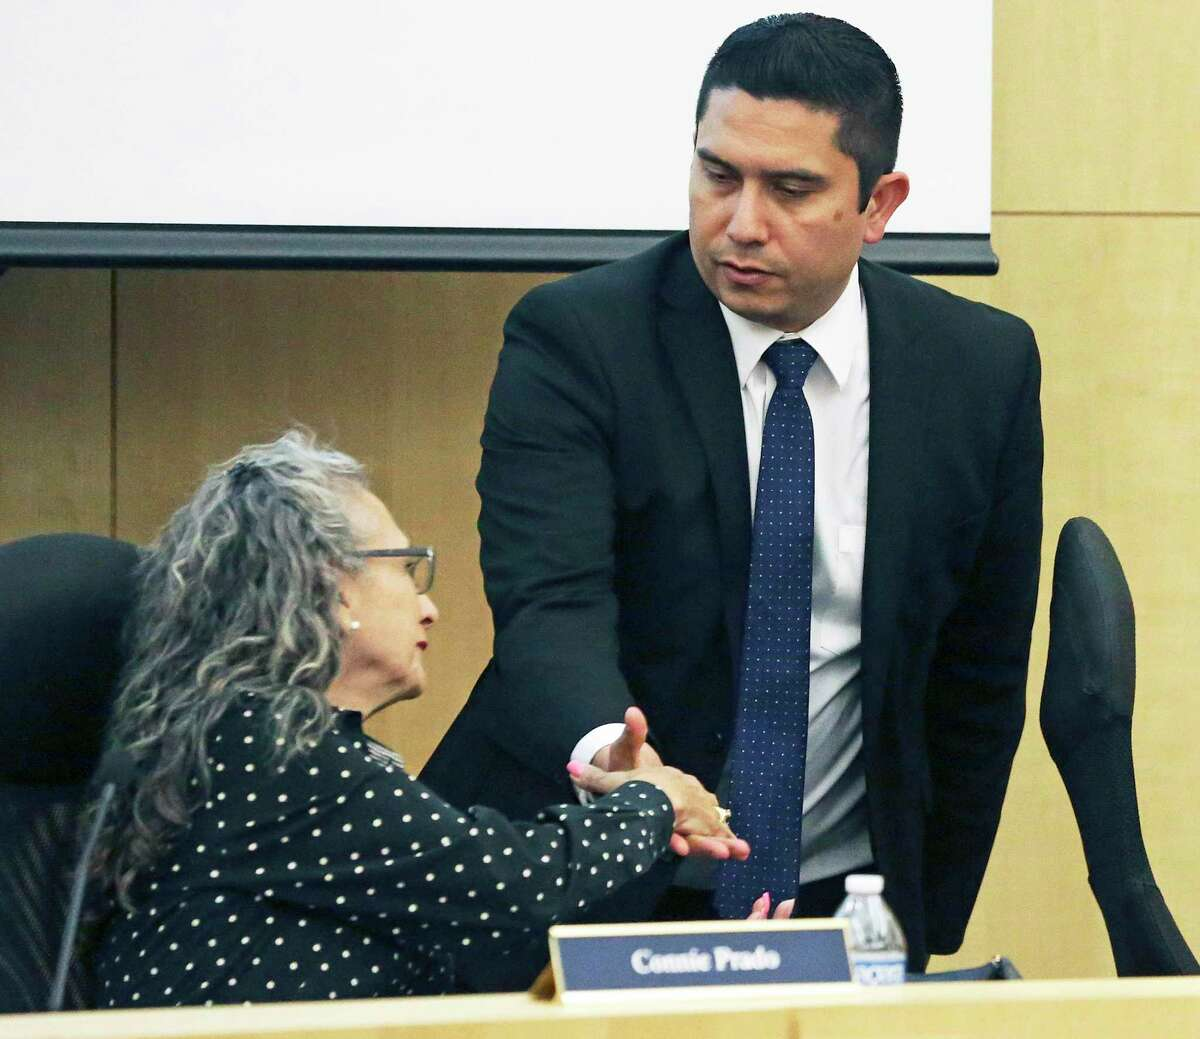 South San ISD Supertintendent Alexandro Flores greets board President Connie Prado before the start of Tuesday night's meeting. At that meeting, trustees approved a separation agreement giving Flores $187,000, or the equivalent of 11 months' pay, as part of a separation agreement.